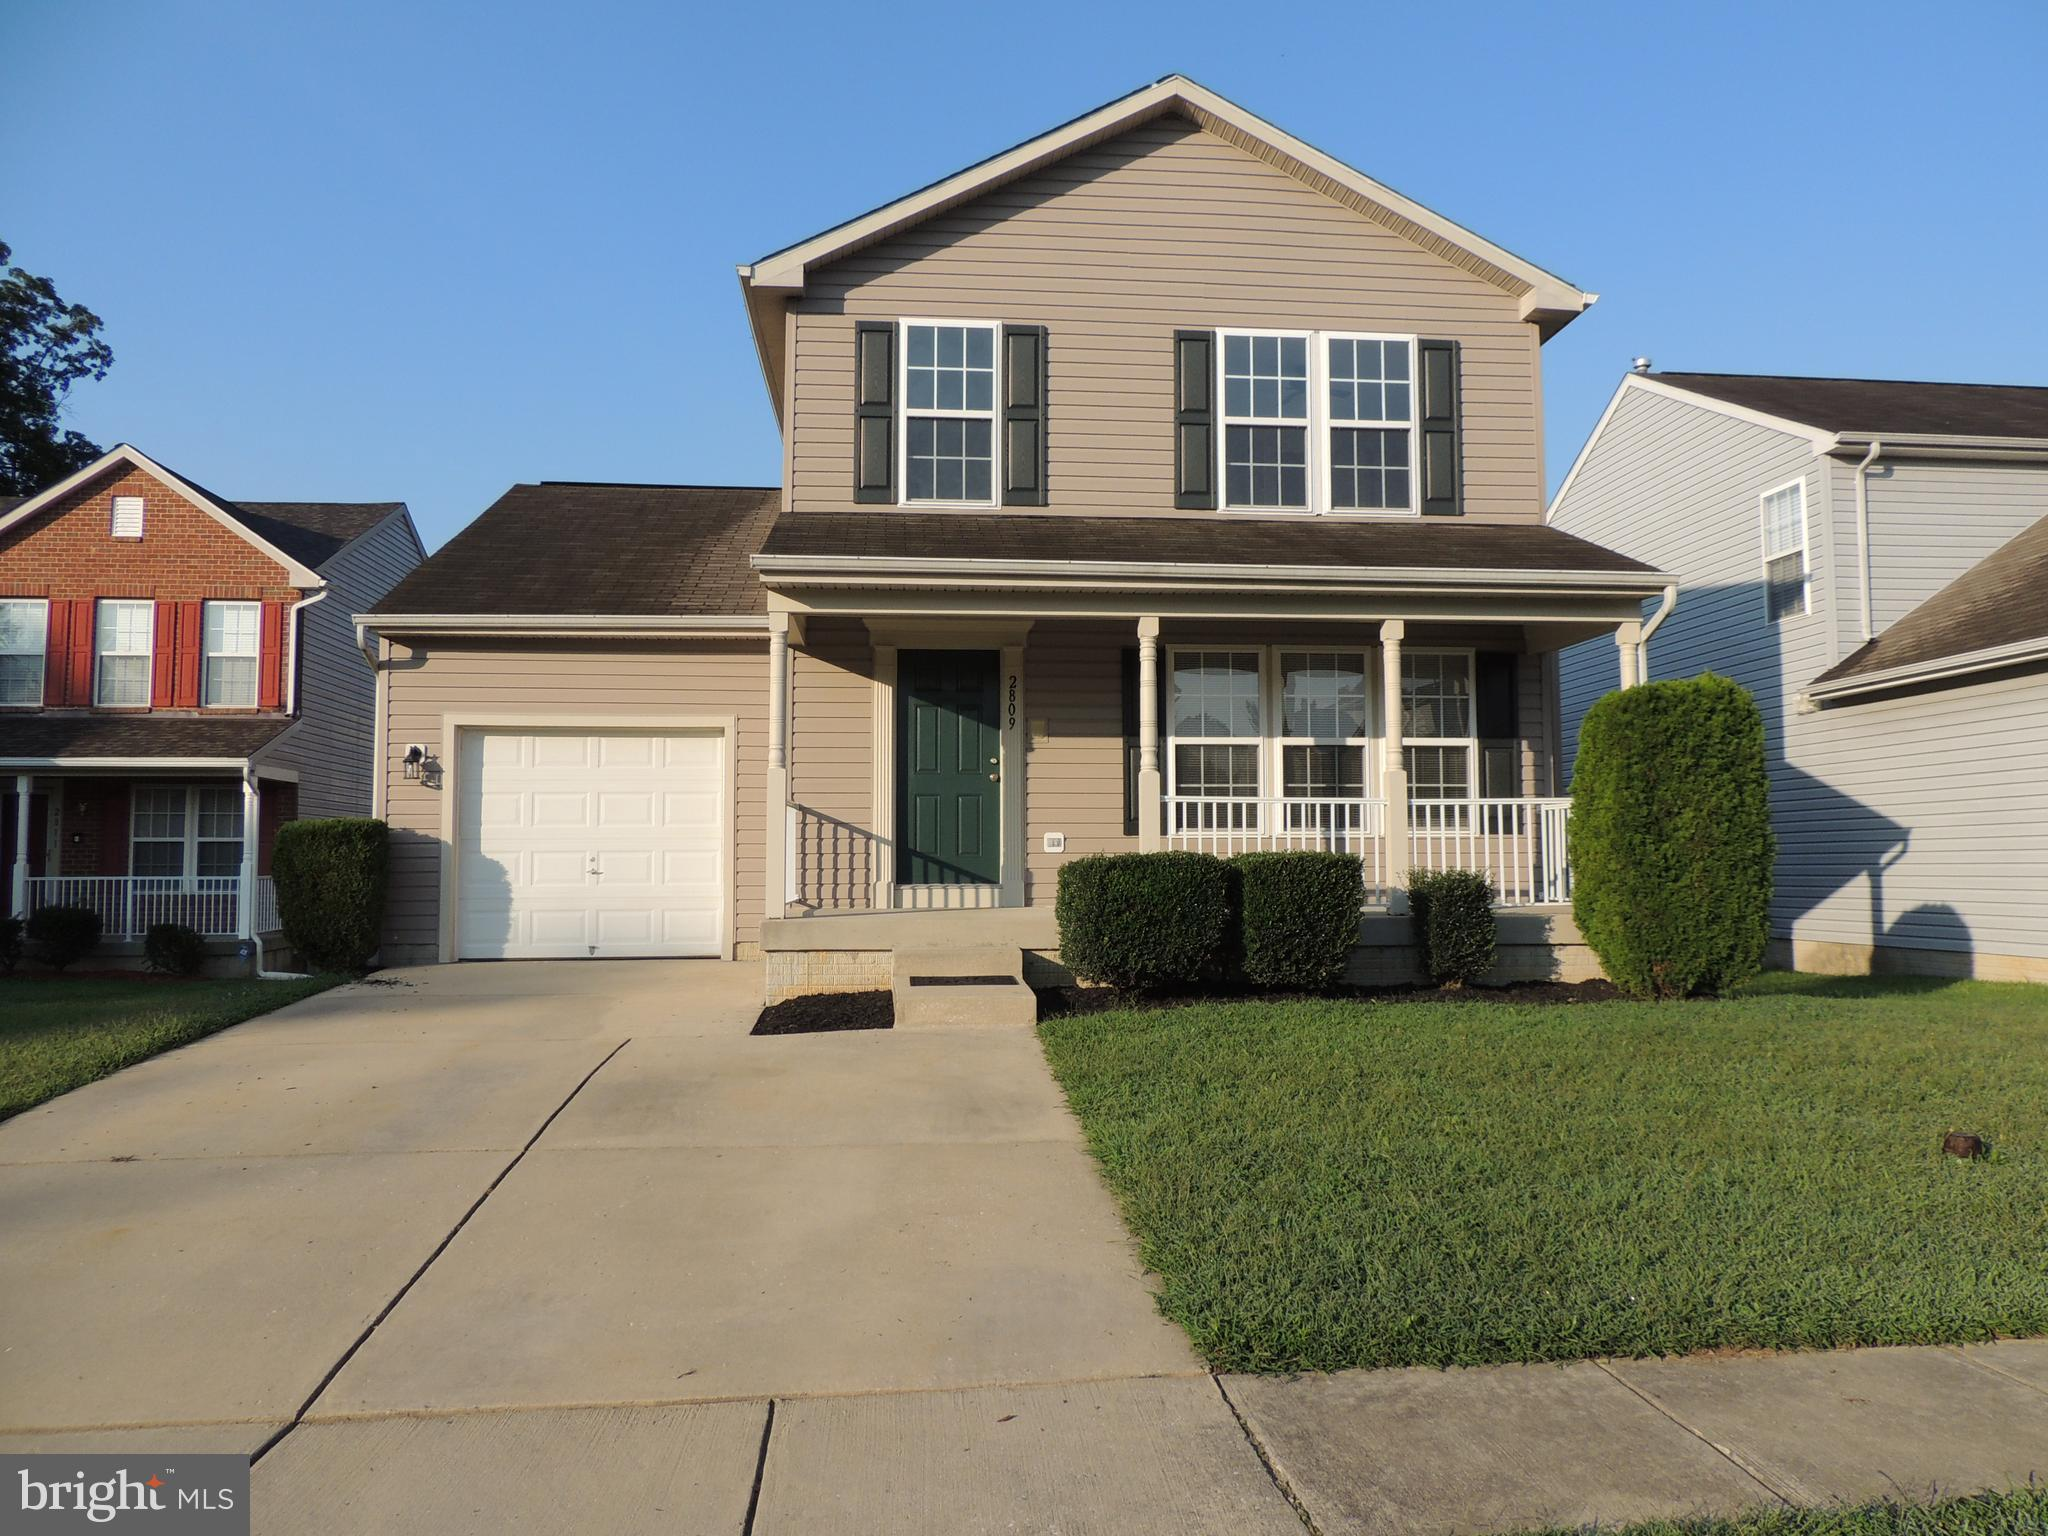 Built in 2003, 4 Br 3.5 Ba, Turn Key Condition. Fresh Paint,  New Main Level Flooring. New carpet up